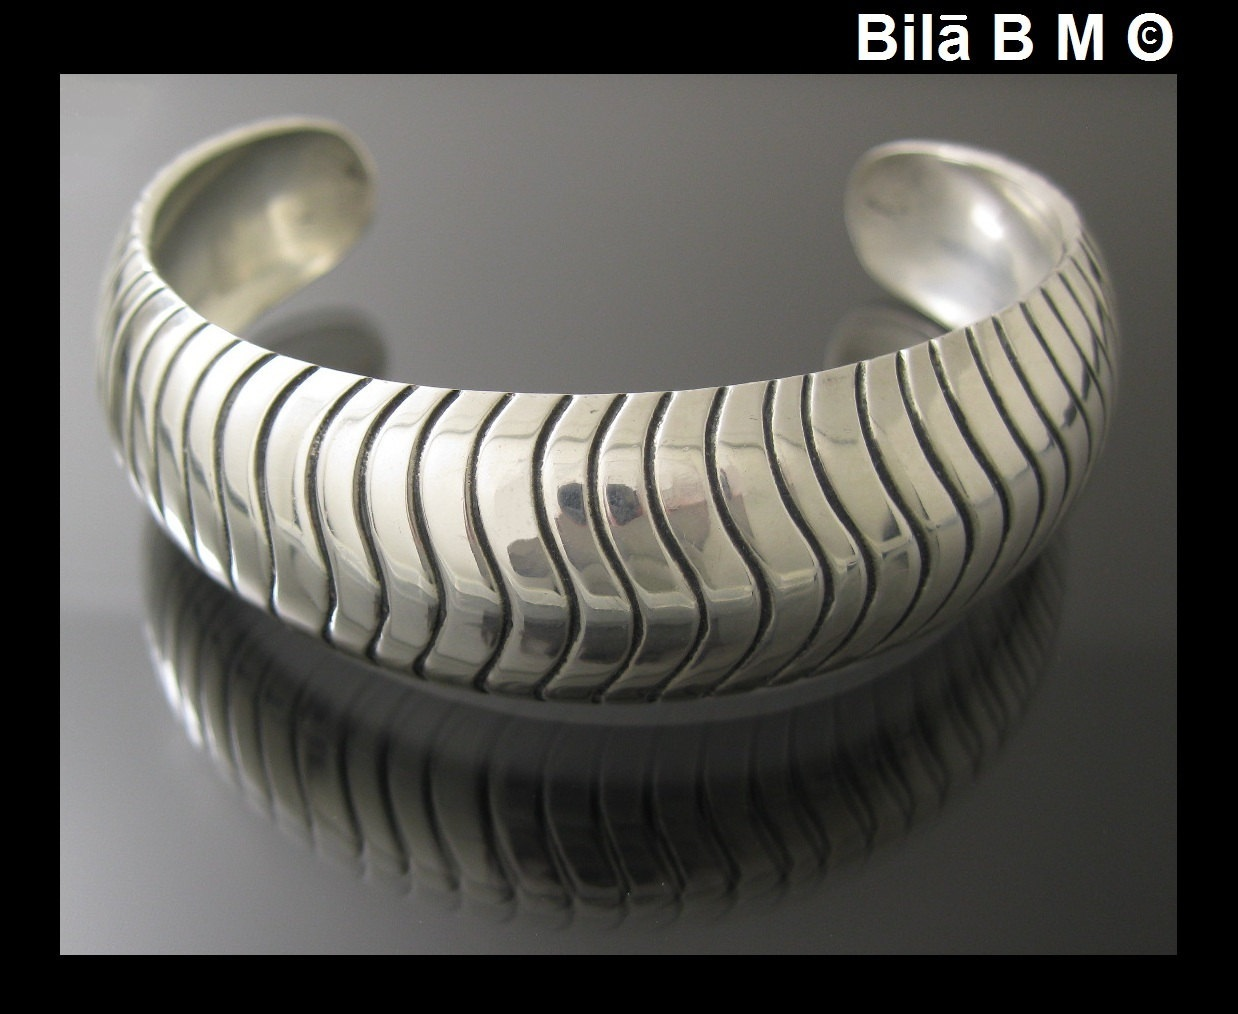 MODERNIST-LOOK Cobra Design HEAVY 925 STERLING Silver CUFF - 40 grams (1.4 oz.)